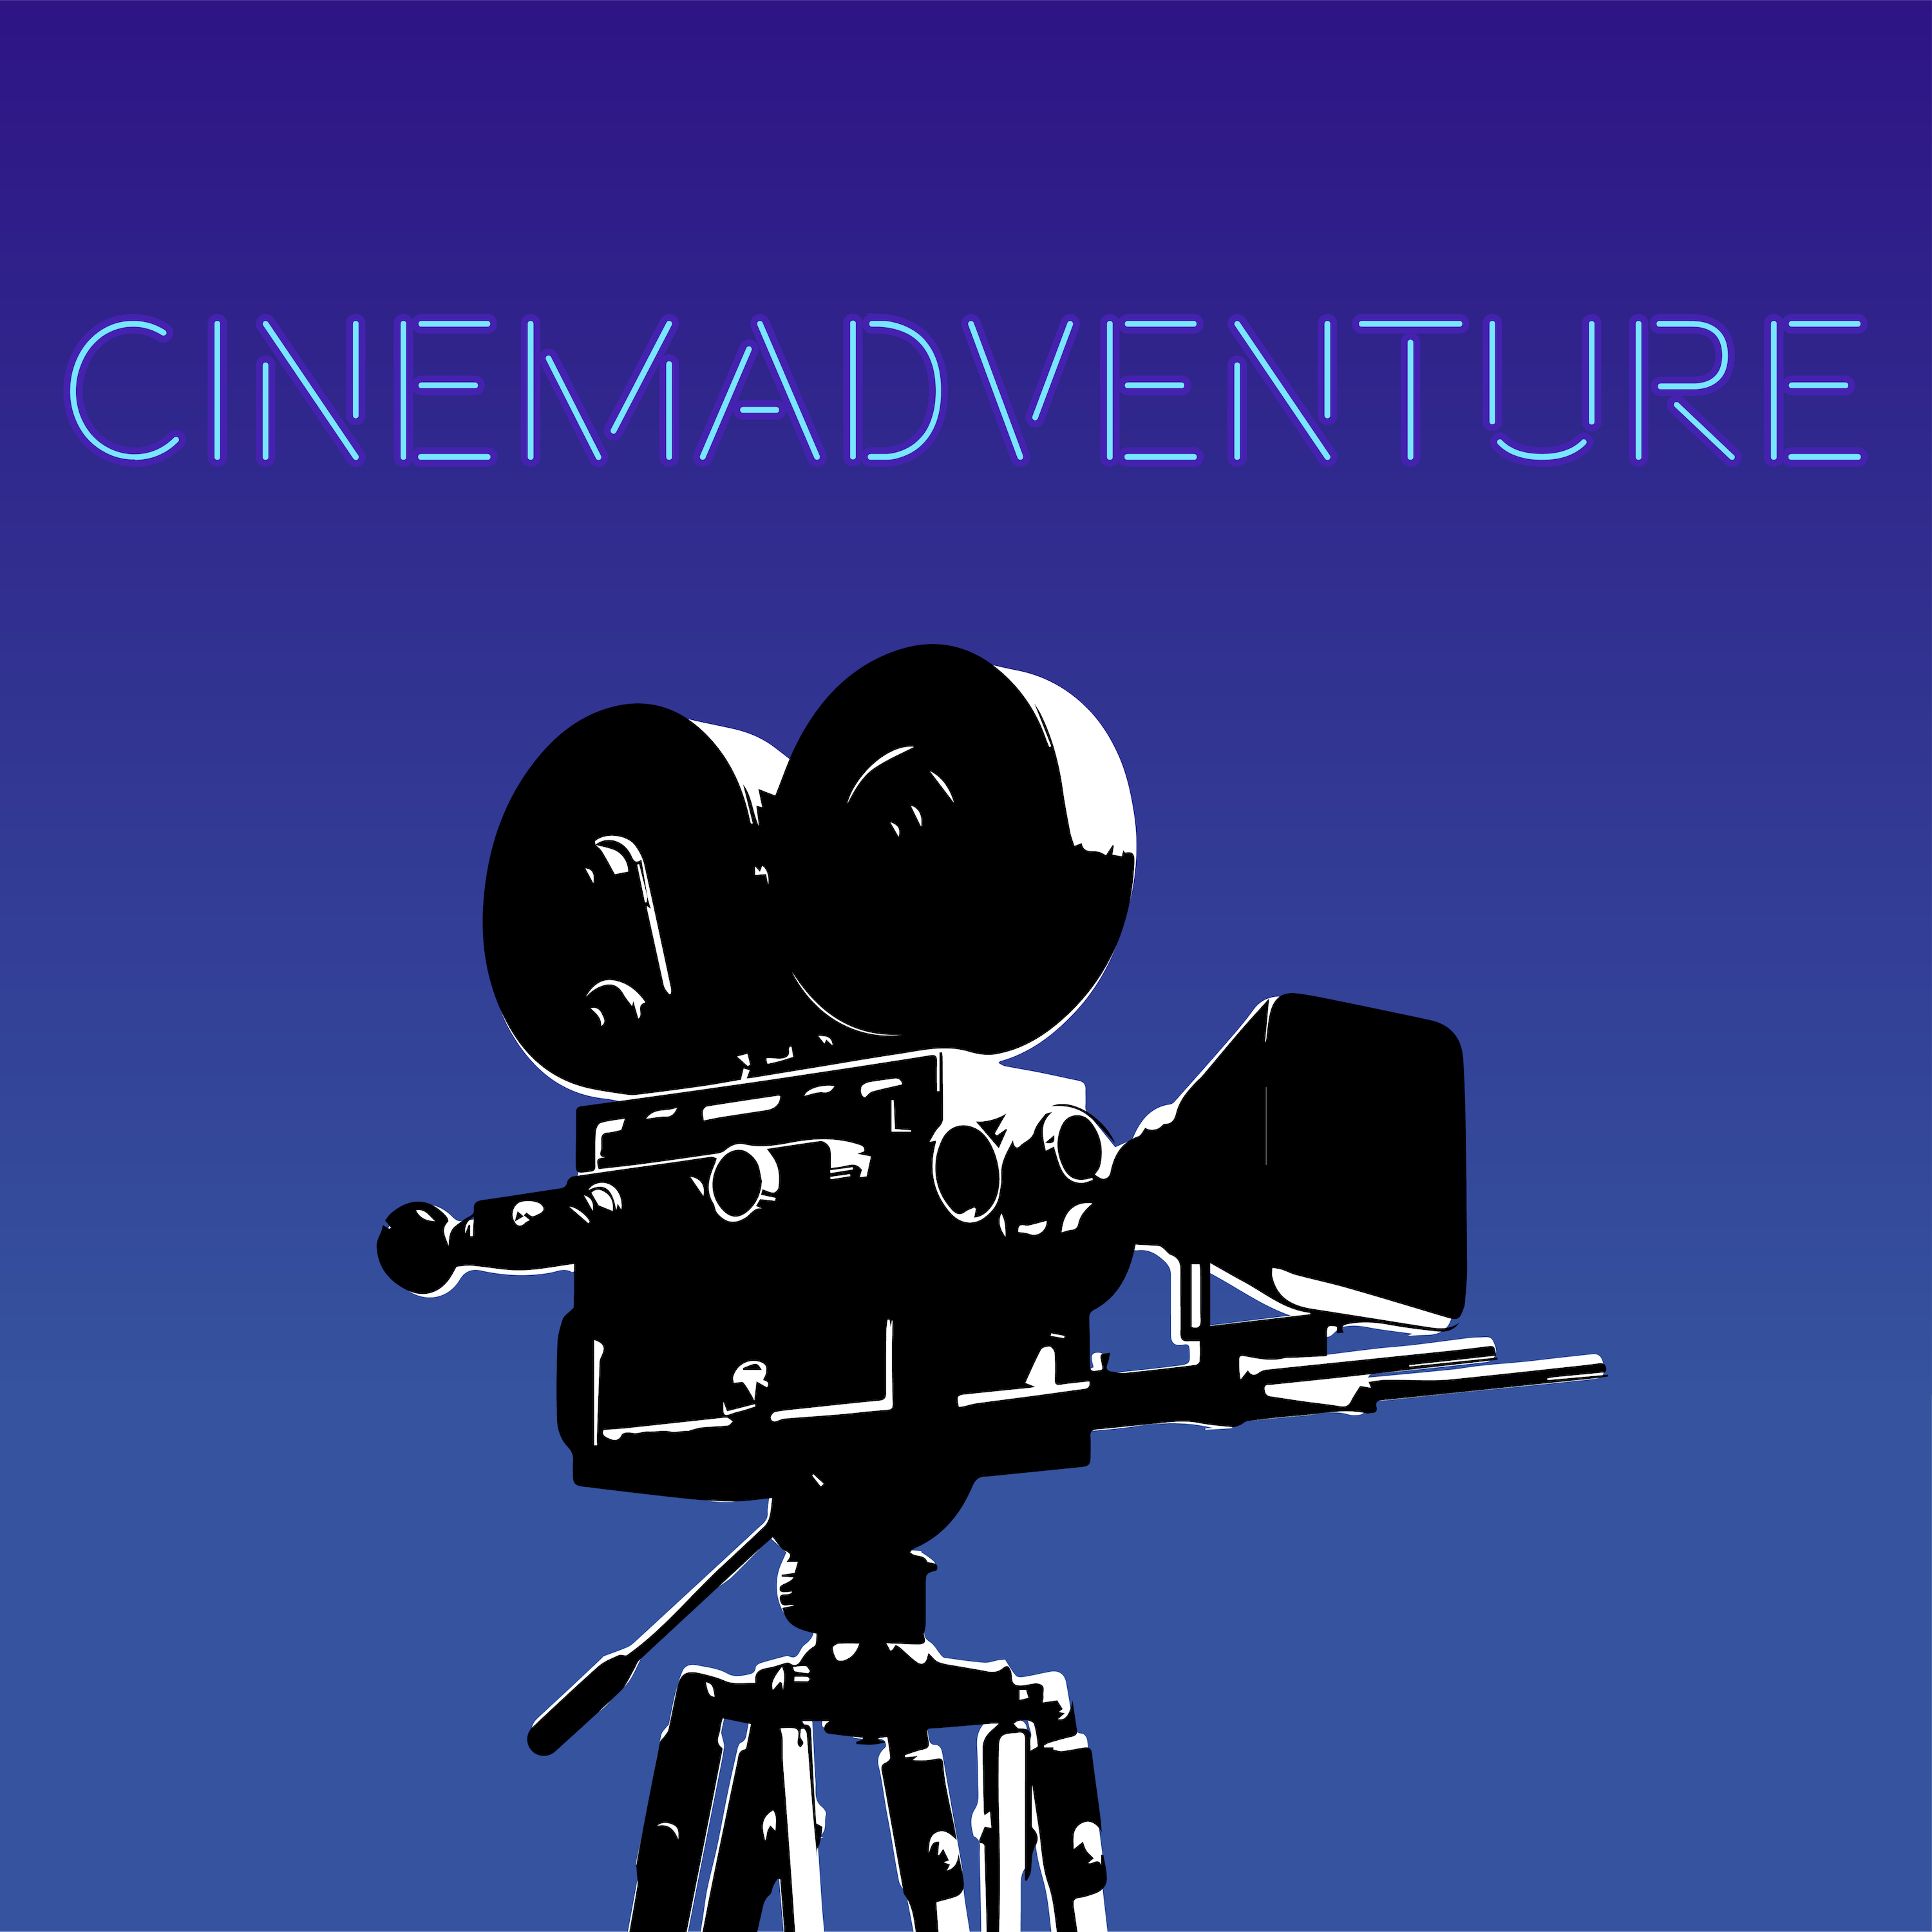 Cinemadventure